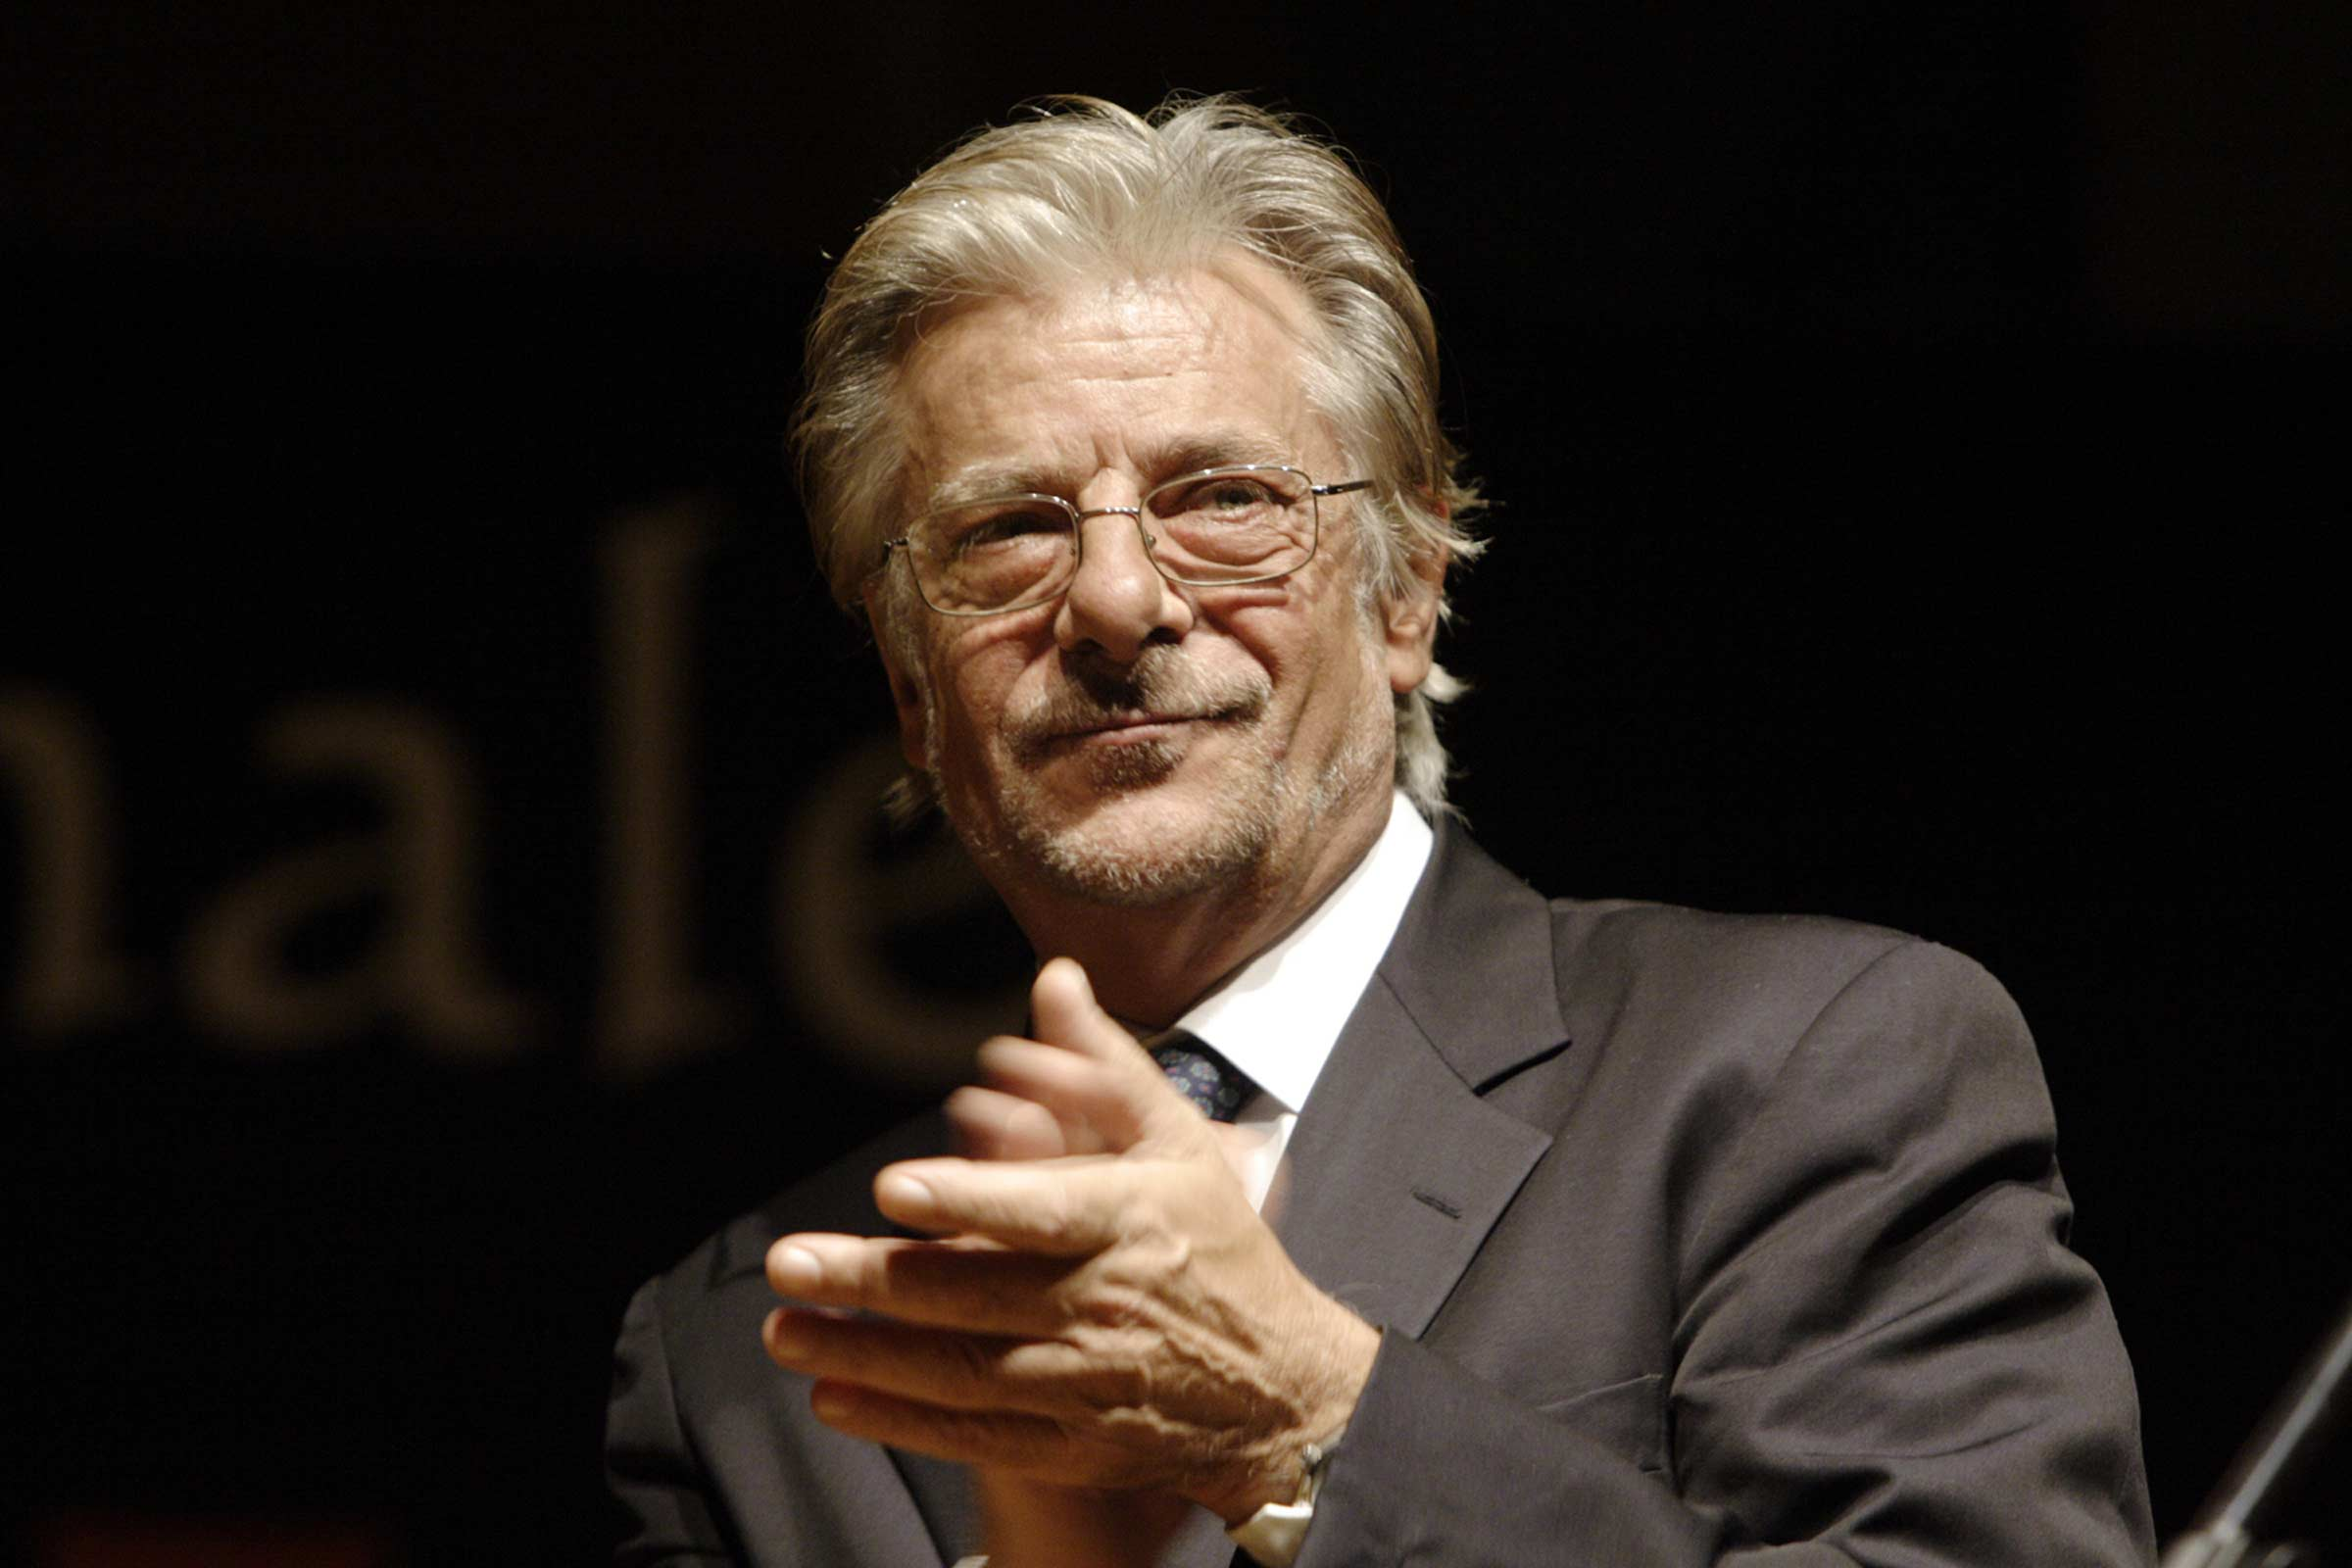 Giancarlo Giannini Celebrity Wallpaper HD Wallpaper